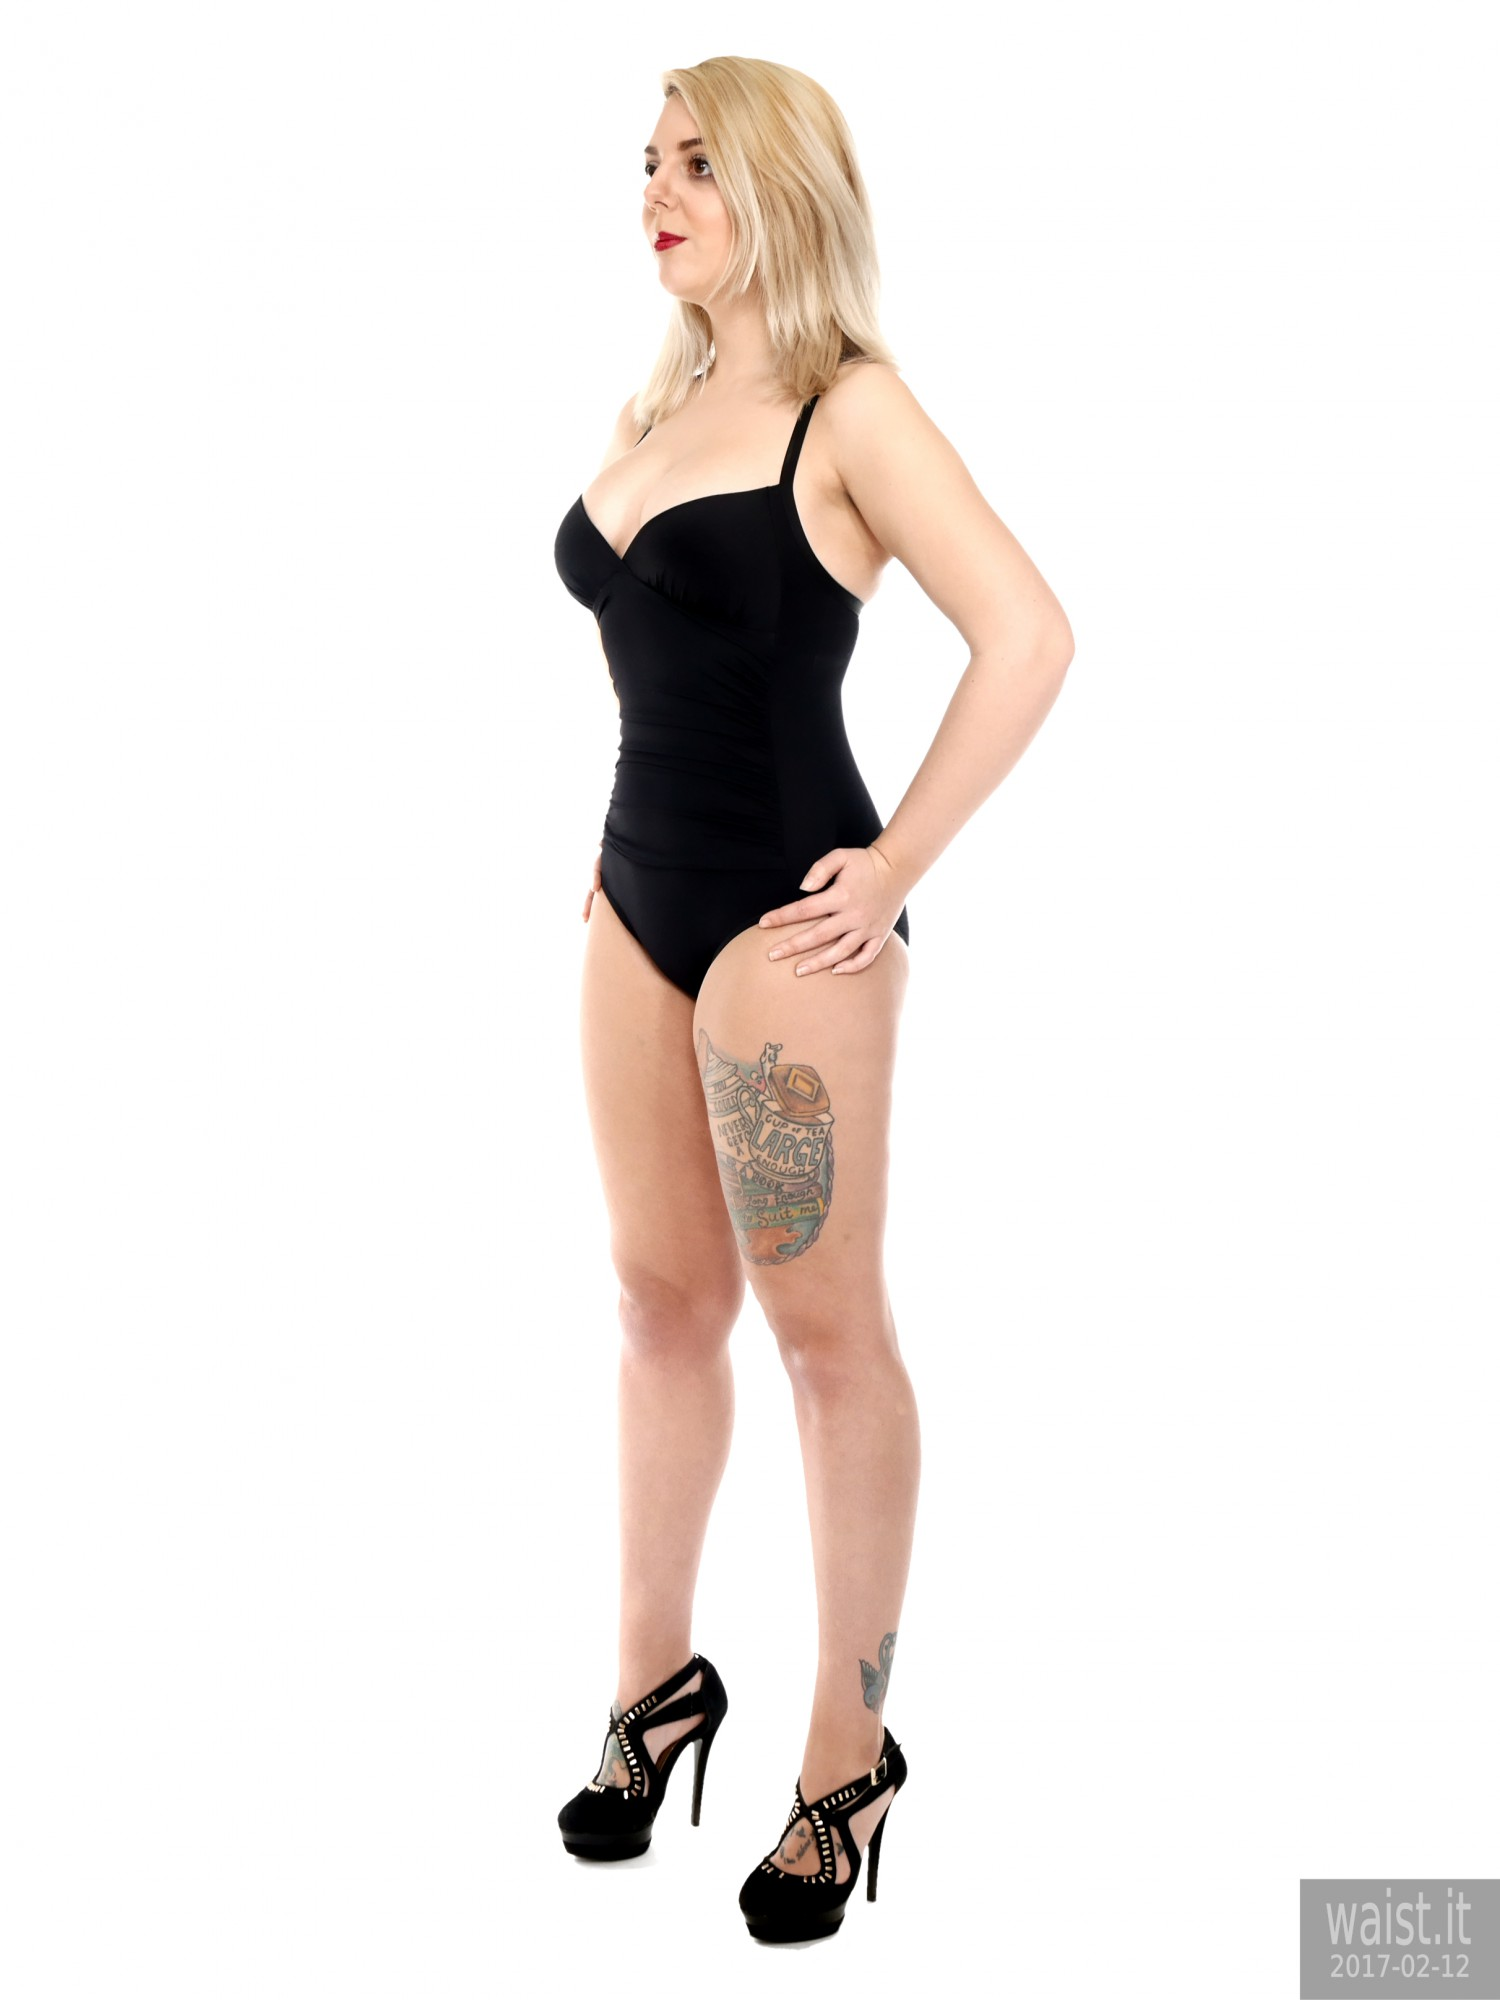 2017-02-12 Pixiee-Lou in black one-piece swimsuit for fitness set